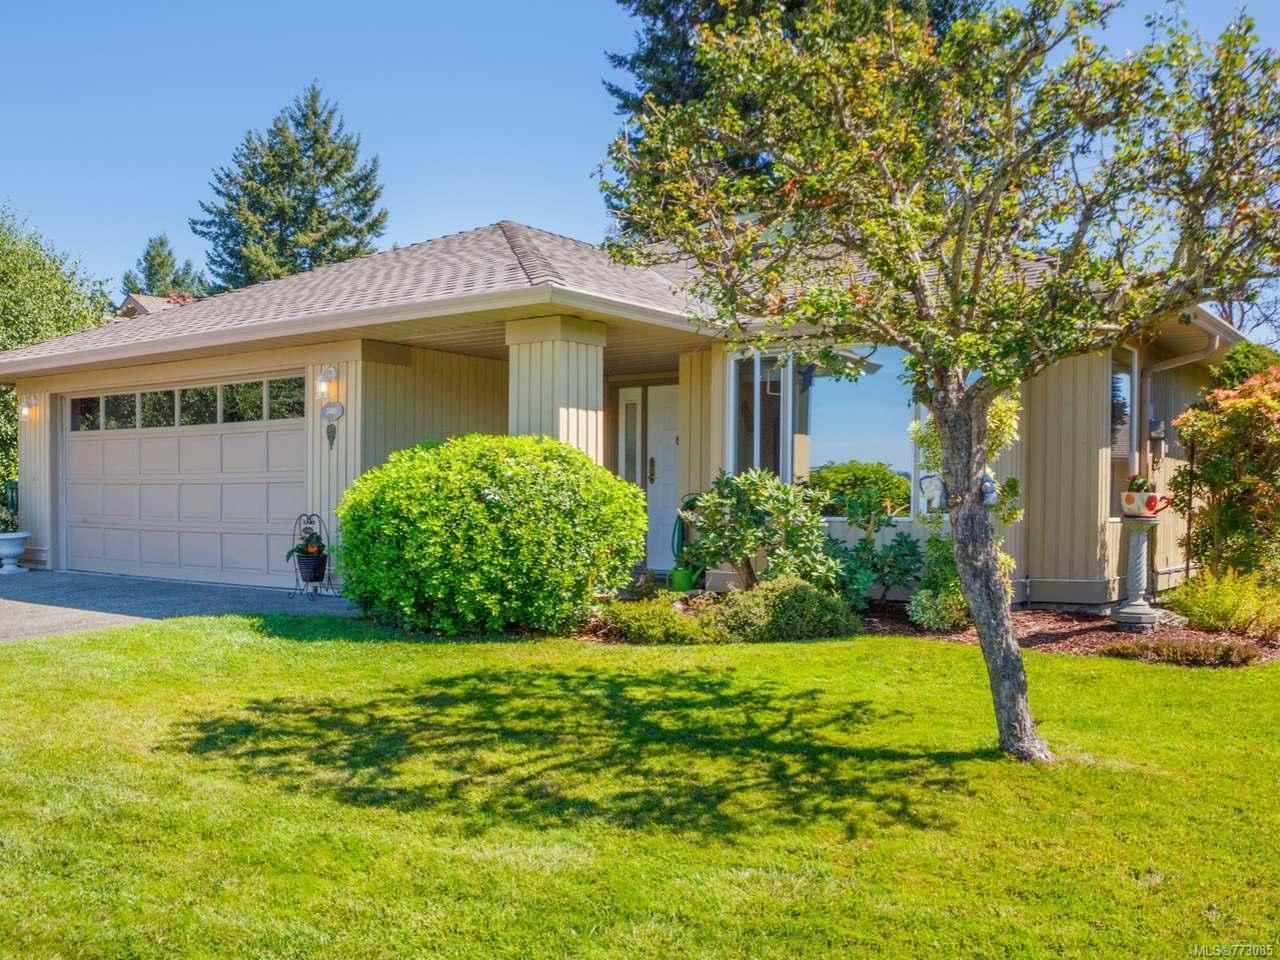 Main Photo: 3485 S Arbutus Dr in COBBLE HILL: ML Cobble Hill House for sale (Malahat & Area)  : MLS®# 773085